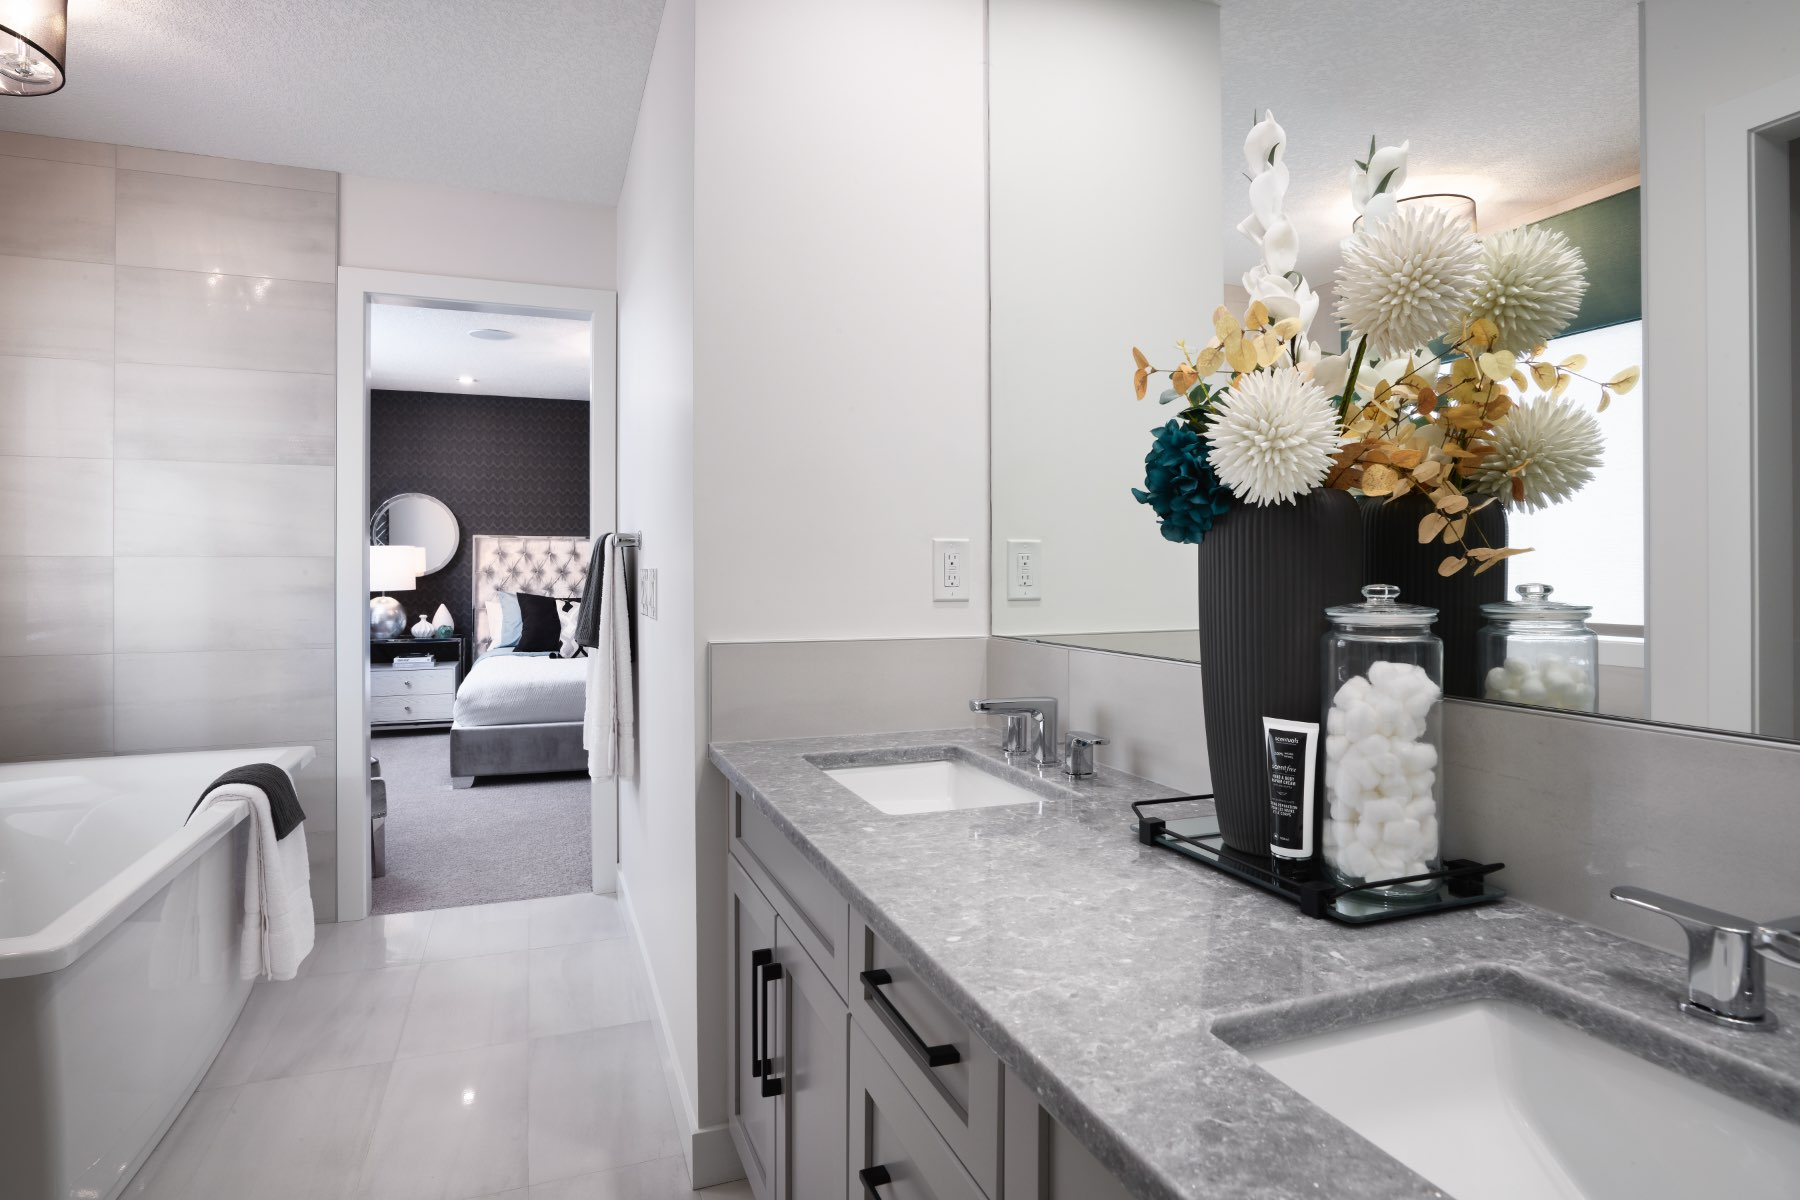 Fairview Plan Bath at Cityscape in Calgary Alberta by Mattamy Homes